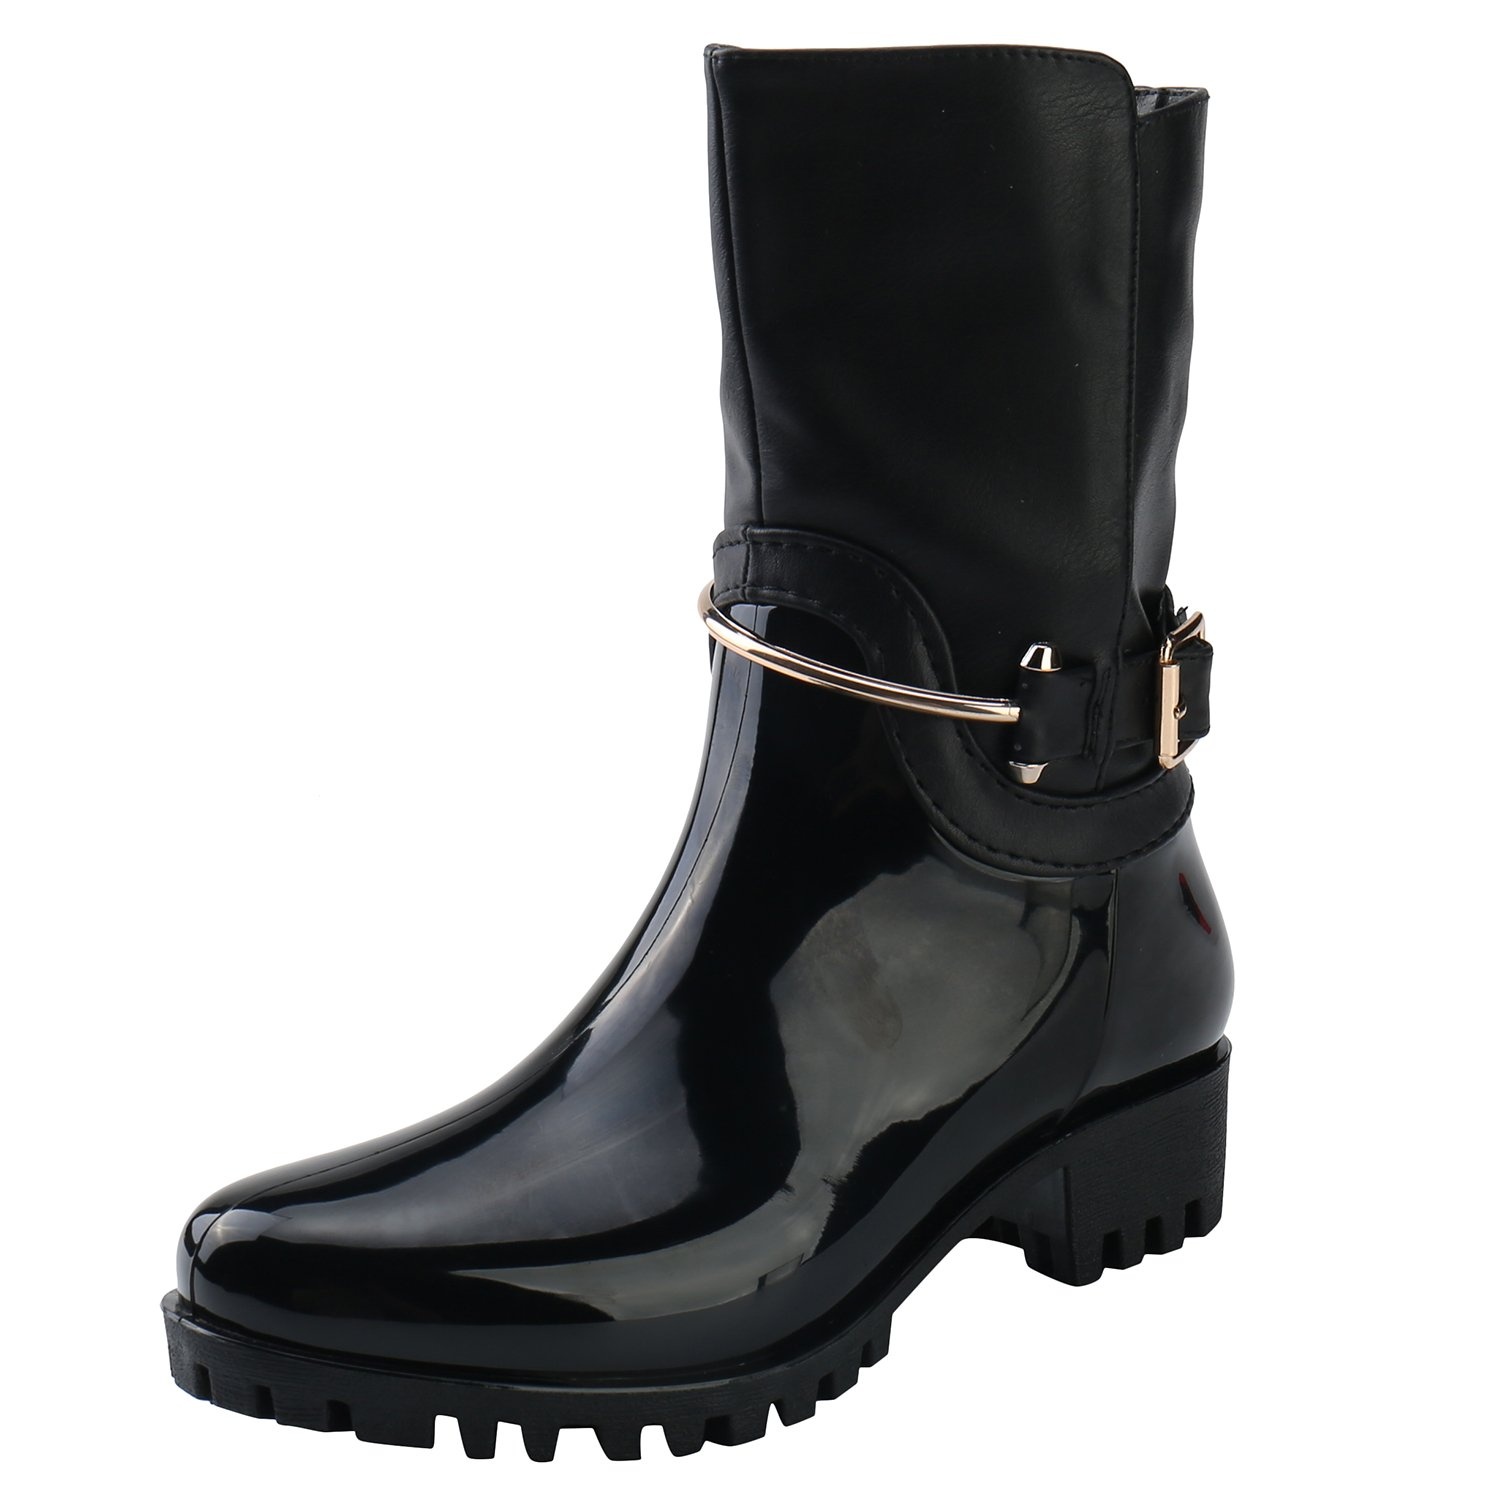 Alexis Leroy Women Stylish Mid Calf Adjustable-Strap Side Zip Heeled Rubber Rain Boots B074FS36RH 37 M EU / 6-6.5 B(M) US|New Black